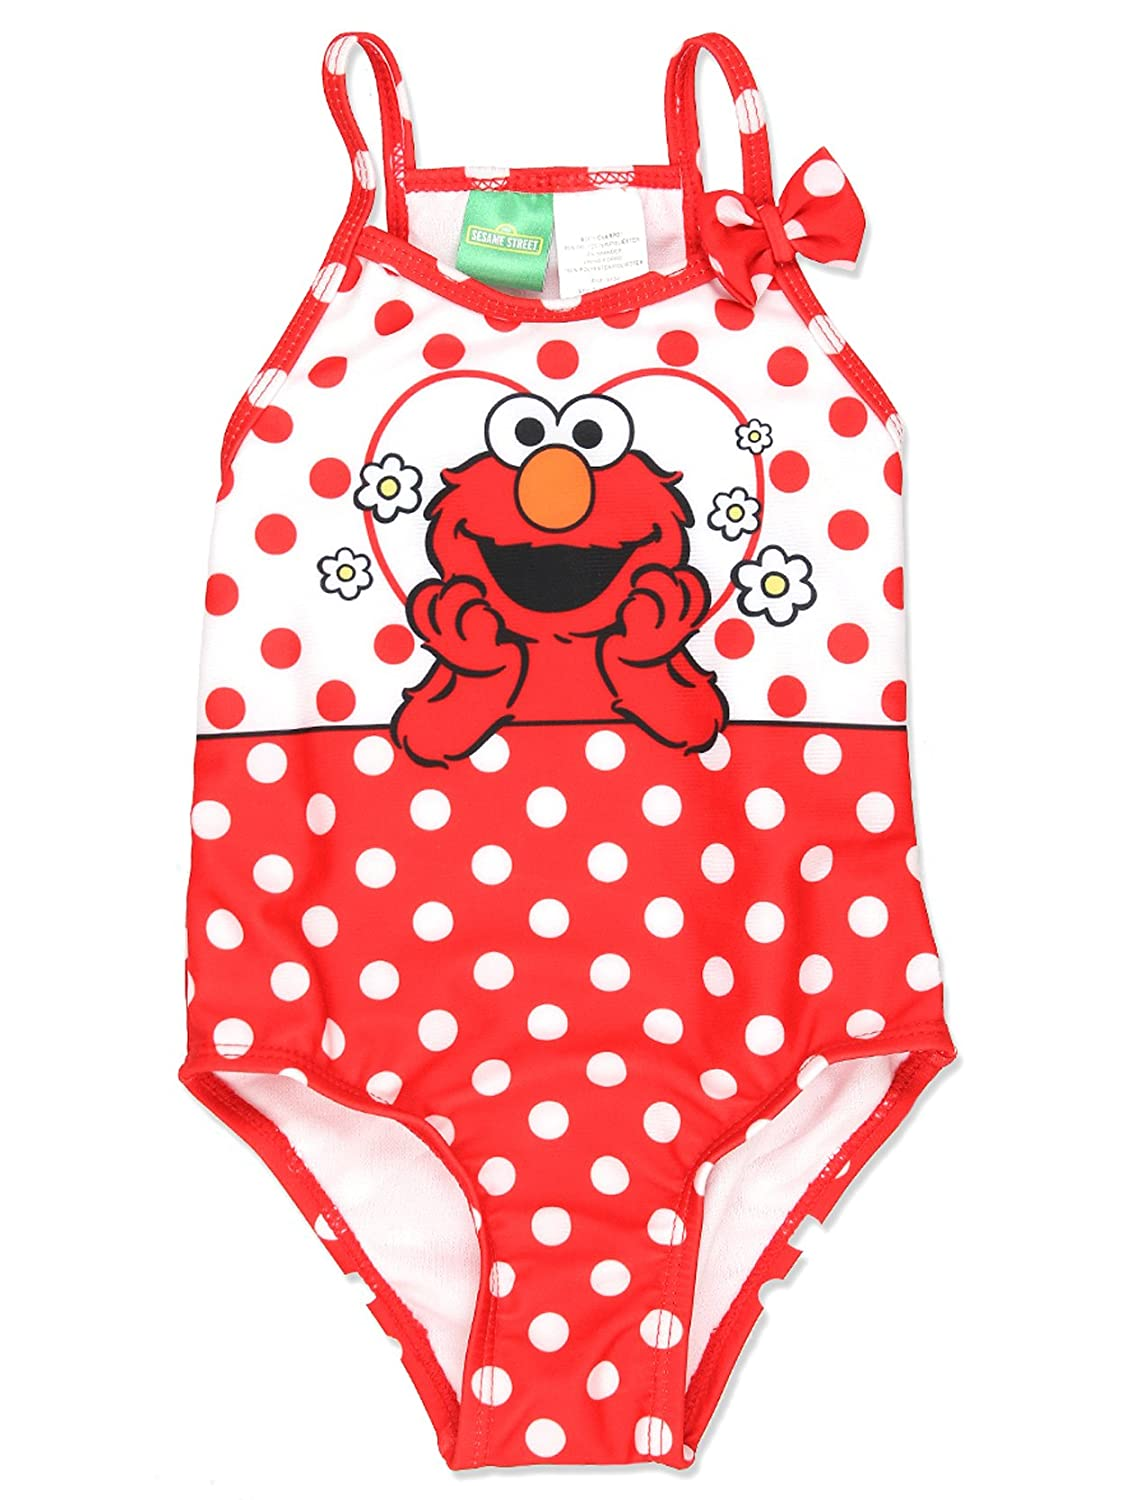 676c435f91 Swimsuit features excellent UPF 50+ UV Sun Protection Fully taped straps   Double stitched hems  Fully lined. Features PBS Kid s Sesame Street  character  ...